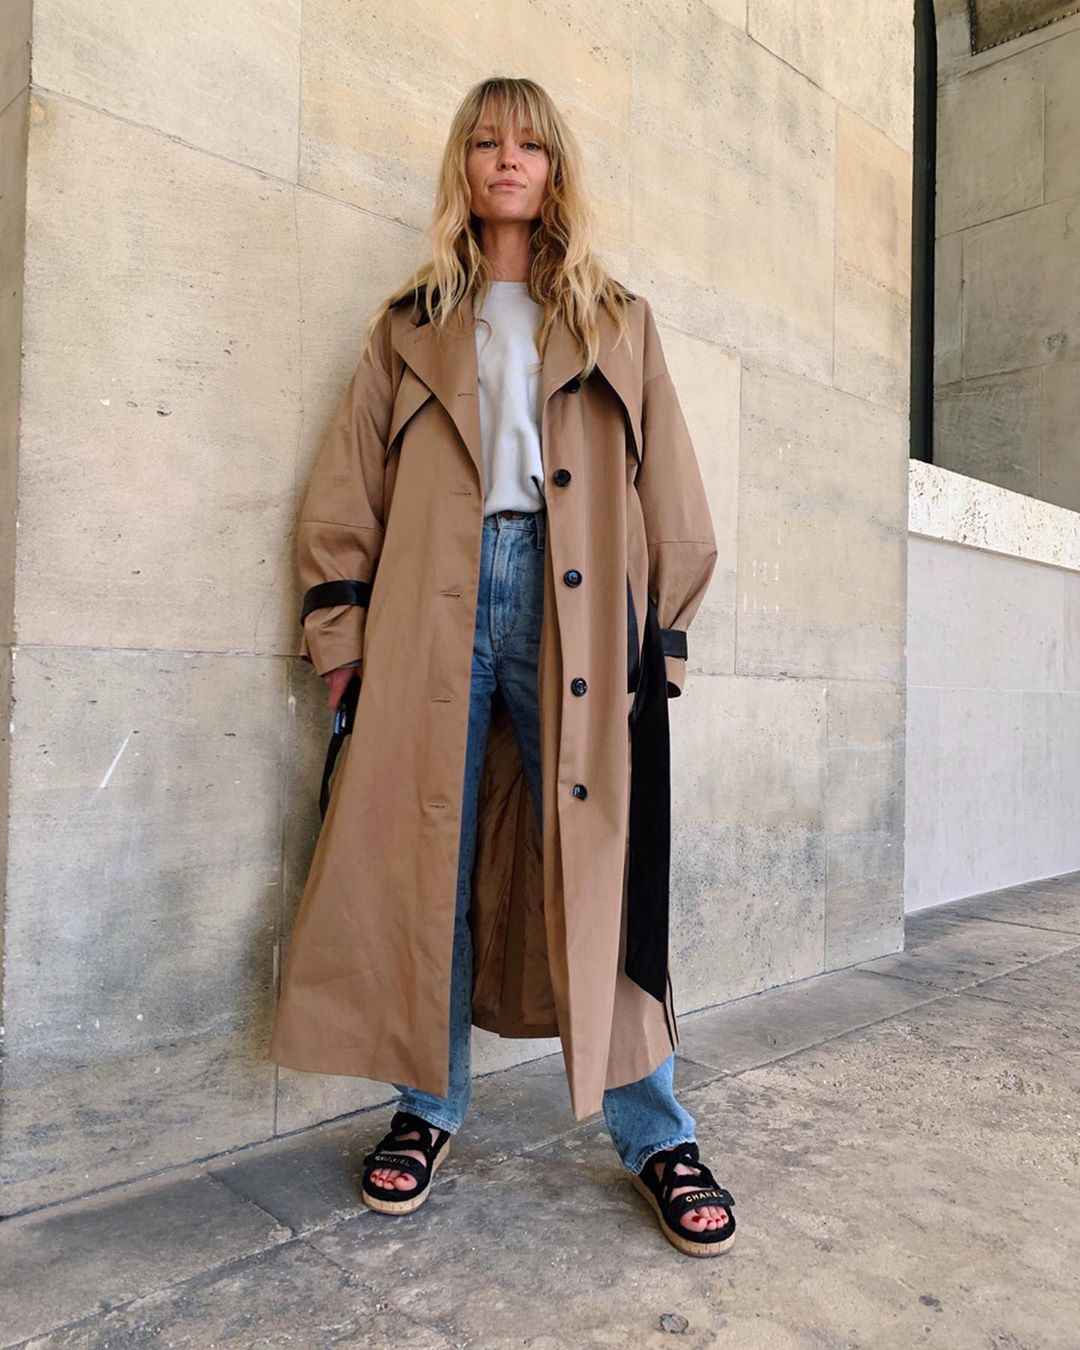 jeanette-madsen-house-of-dagmar-koto-coat-instagram